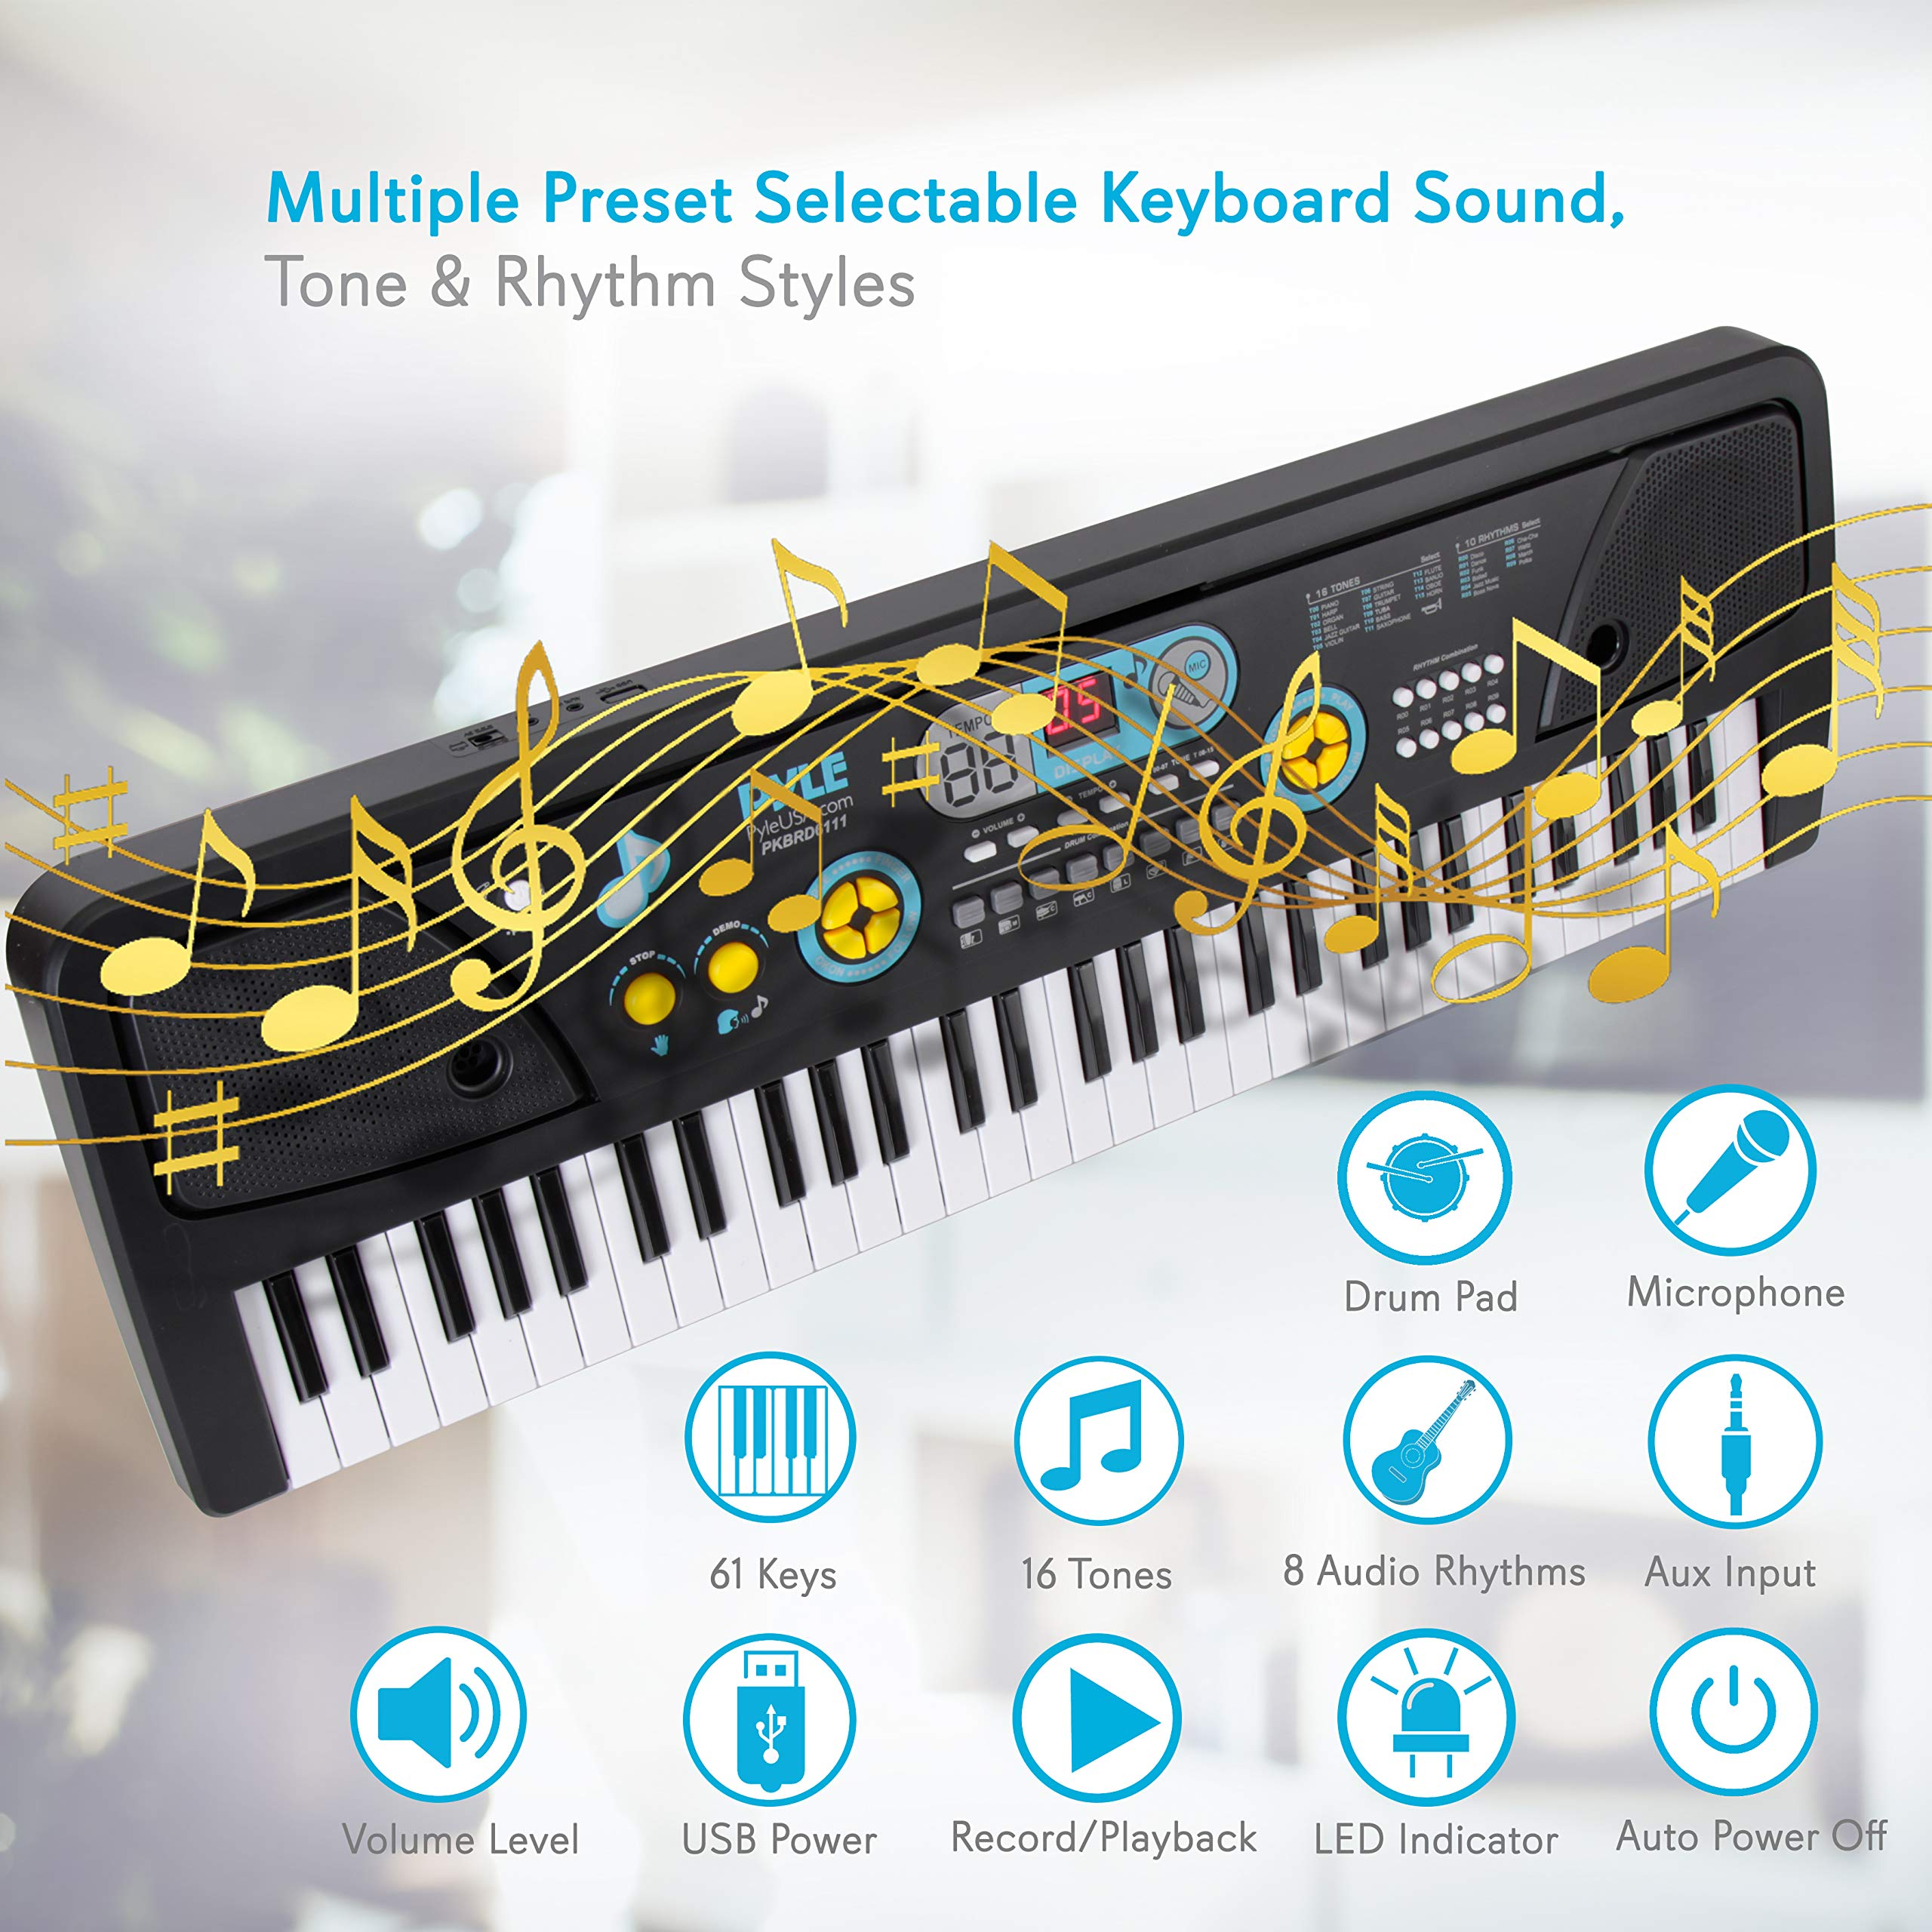 Digital Piano Kids Keyboard - Portable 61 Key Piano Keyboard, Learning Keyboard for Beginners w/ Drum Pad, Recording, Microphone, Music Sheet Stand, Built-in Speaker - Pyle PKBRD6111 by Pyle